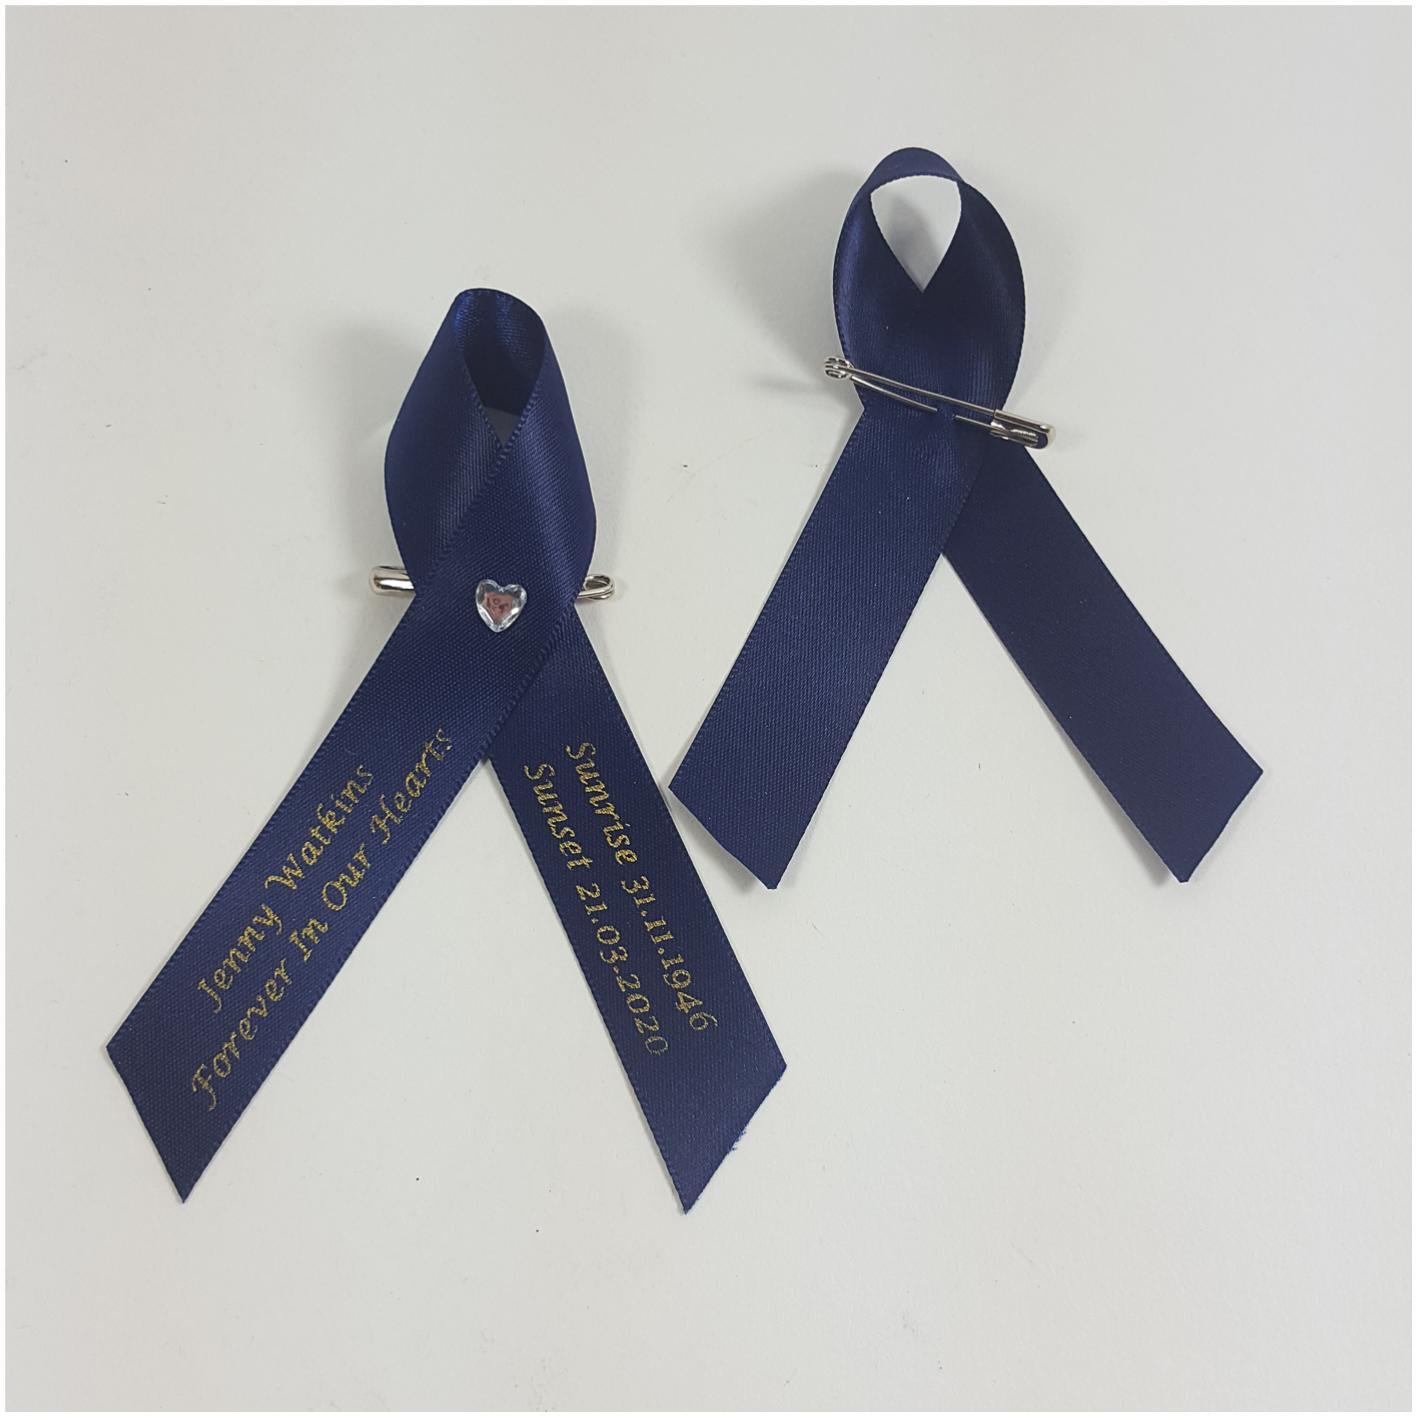 Heart memorial Ribbon